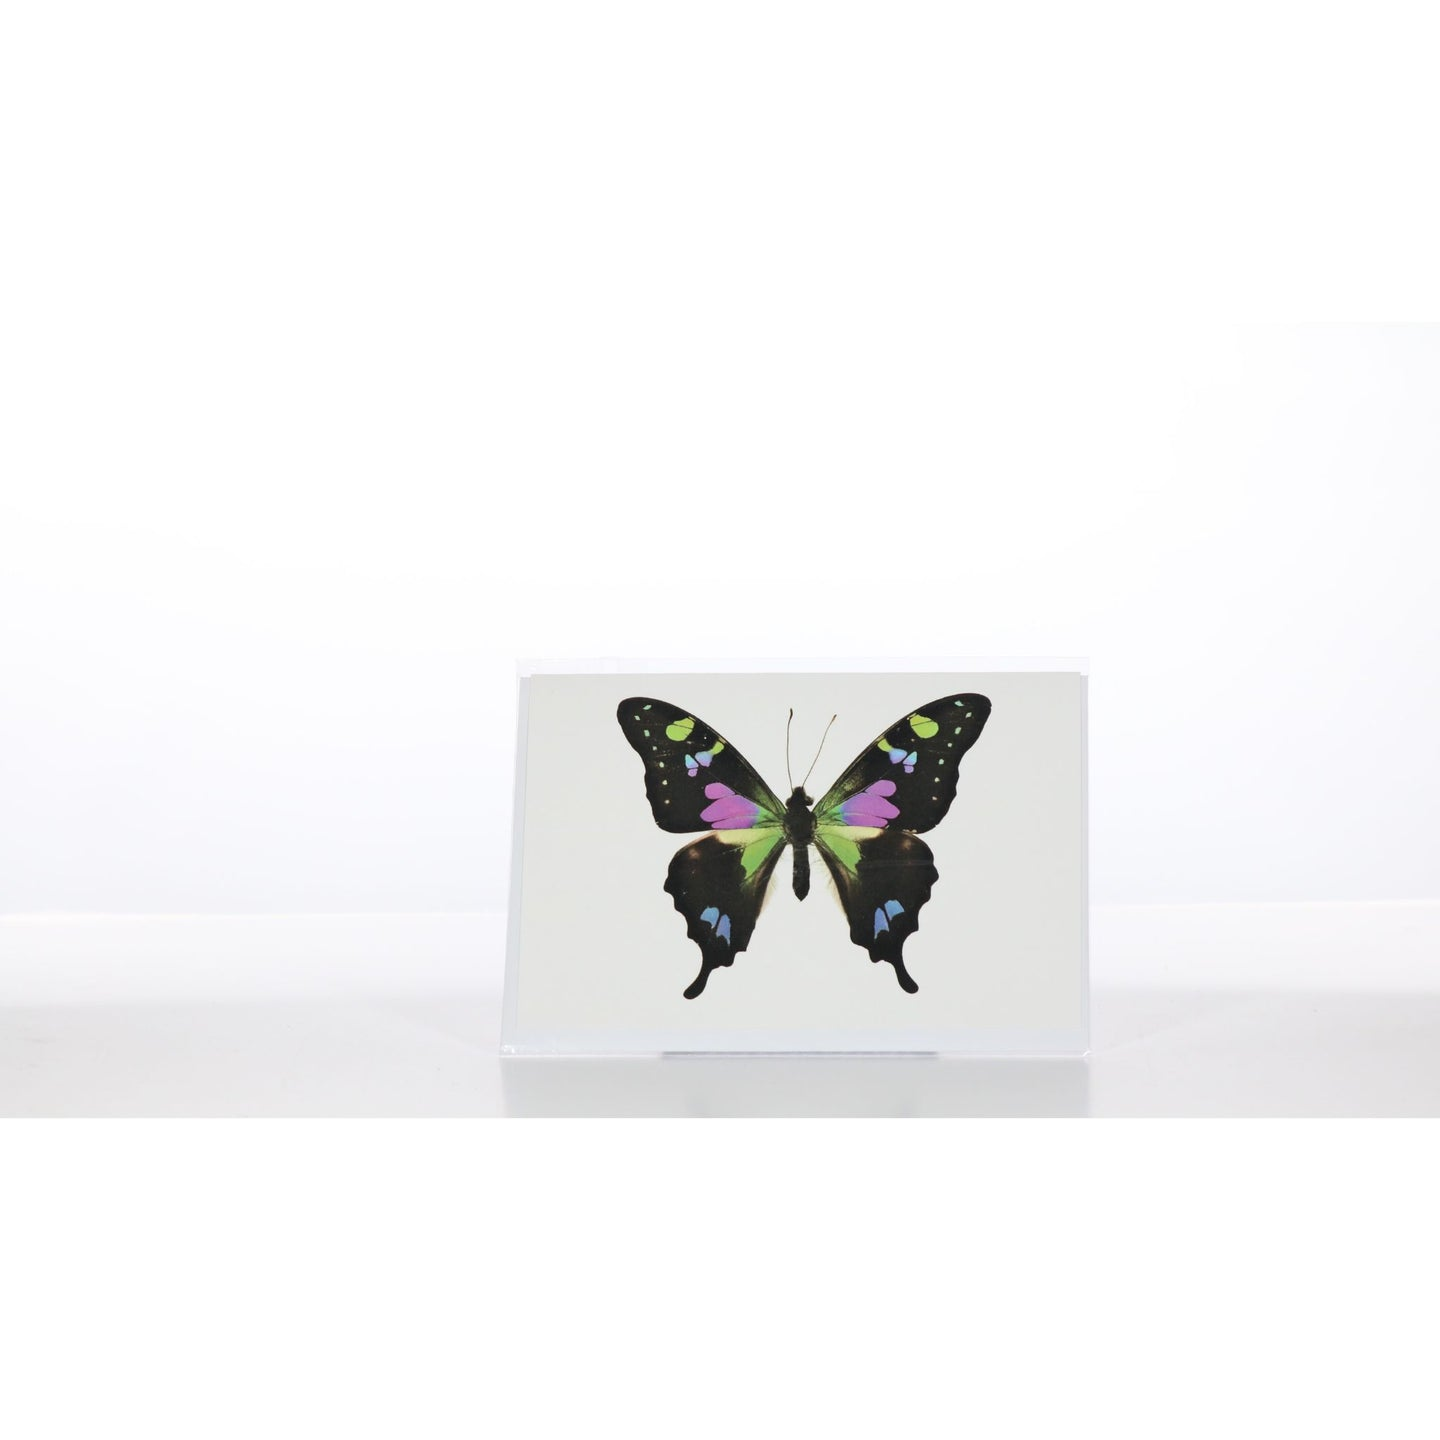 Greeting Card GC13 - Insecta Etcetera